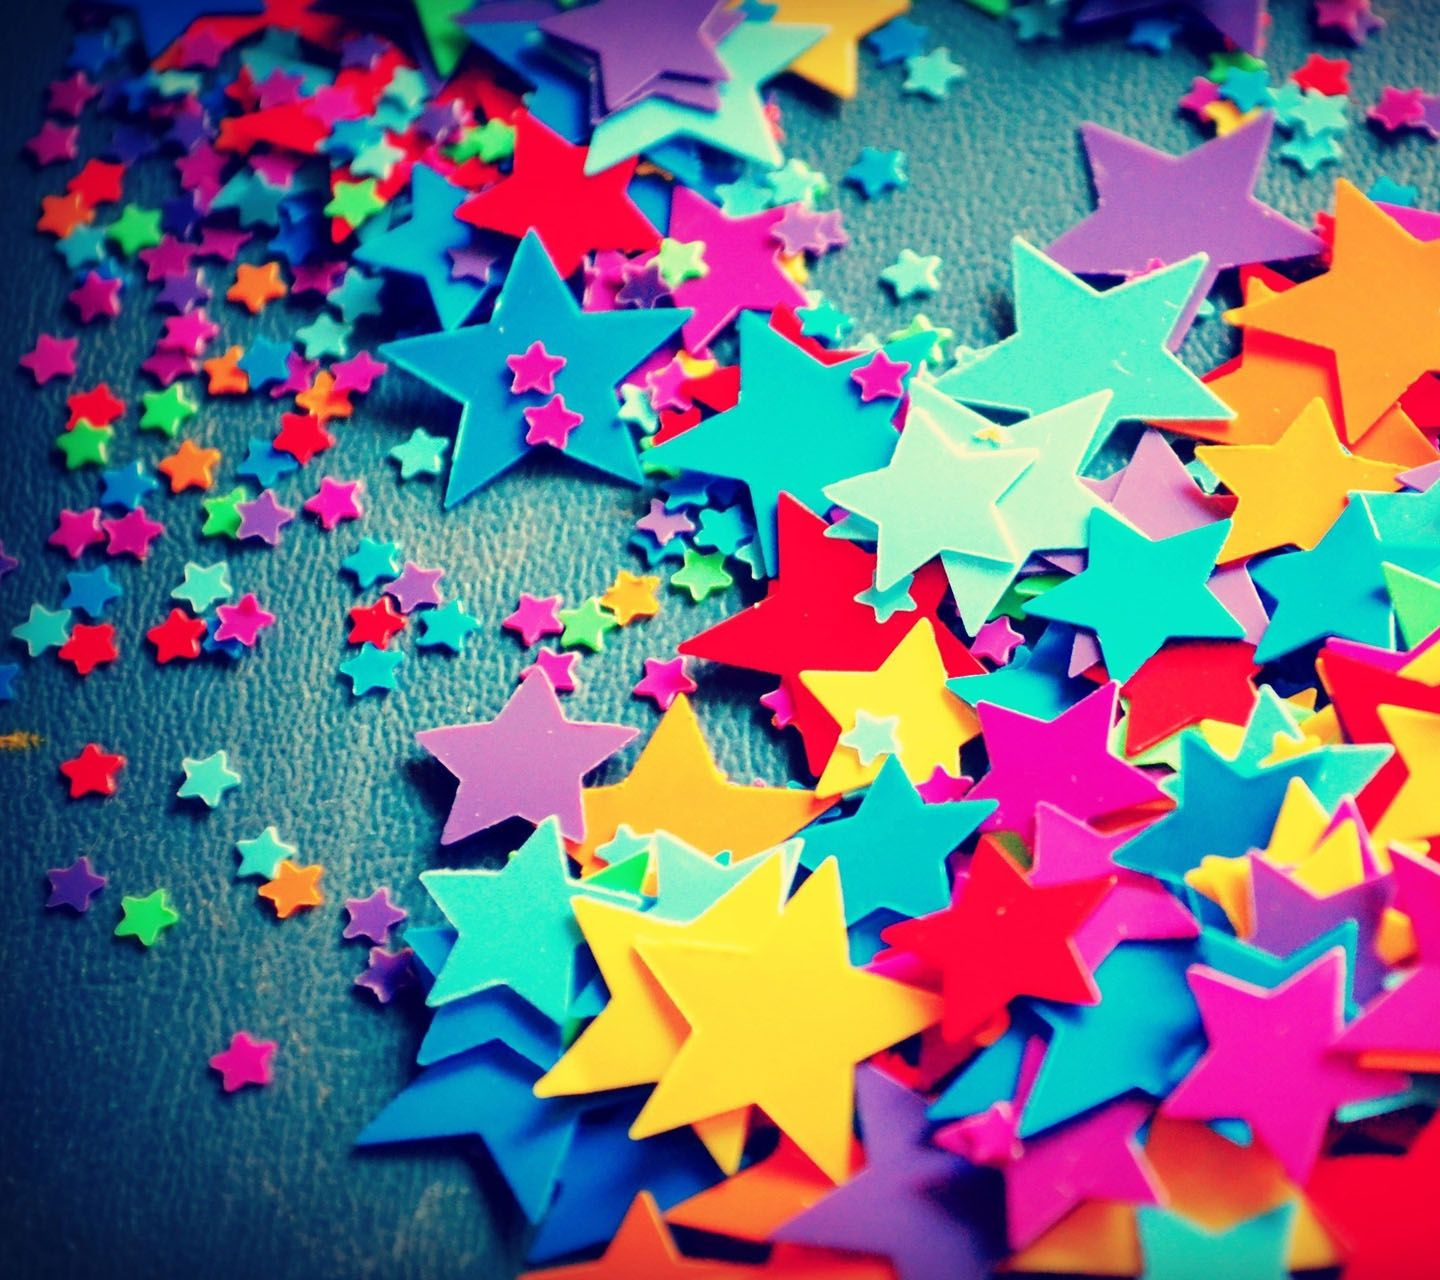 Hd wallpaper colorful - Find This Pin And More On Colorful Colorful Stars Photography Hd Desktop Wallpaper